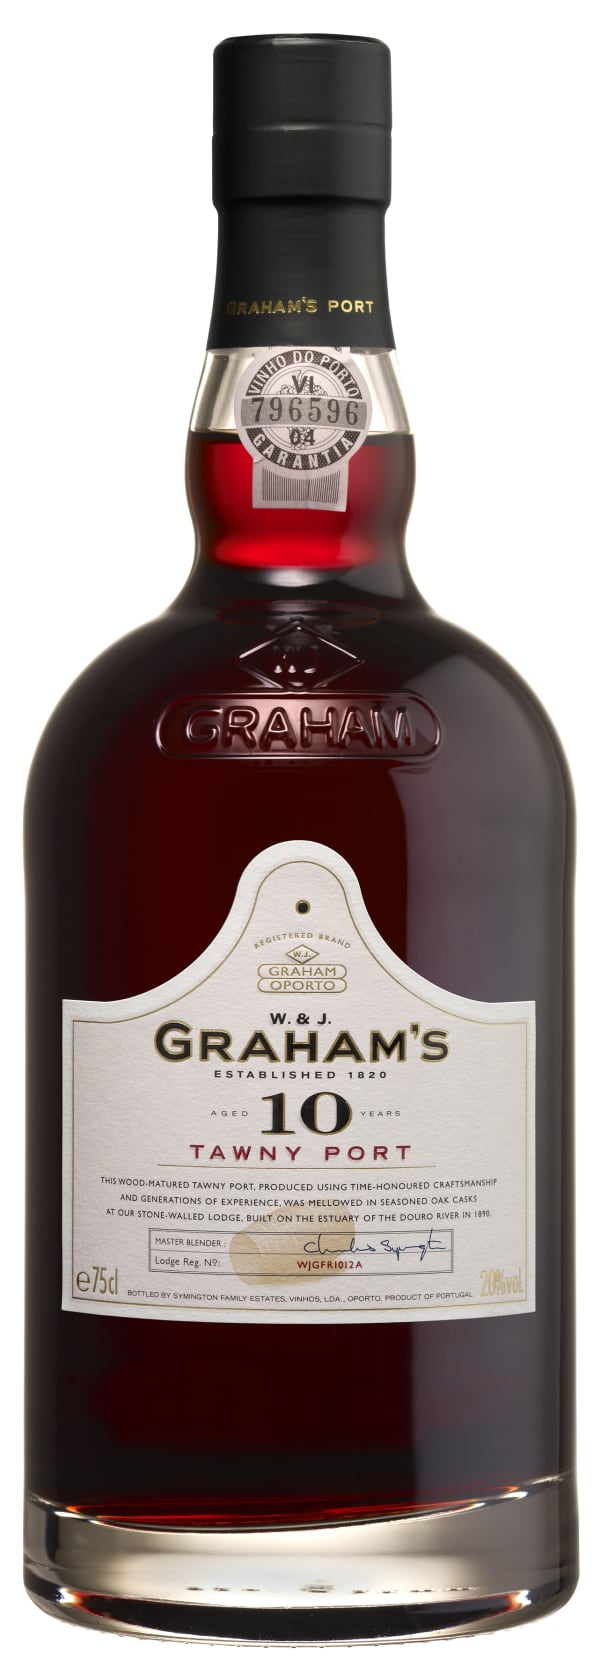 Graham's 10 Years Old Tawny Port